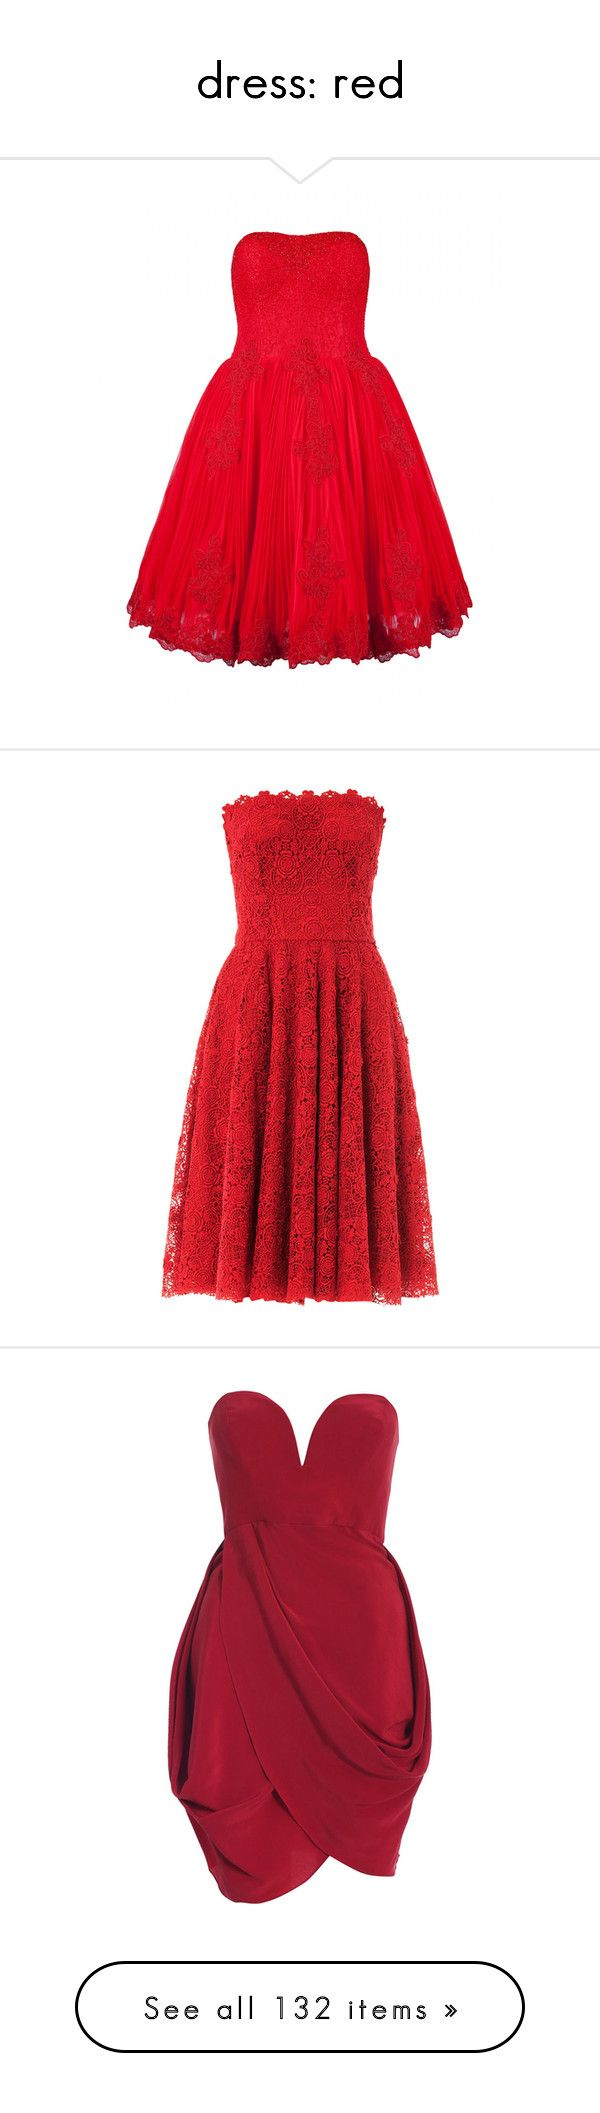 """dress: red"" by menchu10 ❤ liked on Polyvore featuring dresses, vestidos, red, red dresses, ted baker dresses, ball dresses, red lace cocktail dress, fitted cocktail dresses, beaded dress and short dresses"